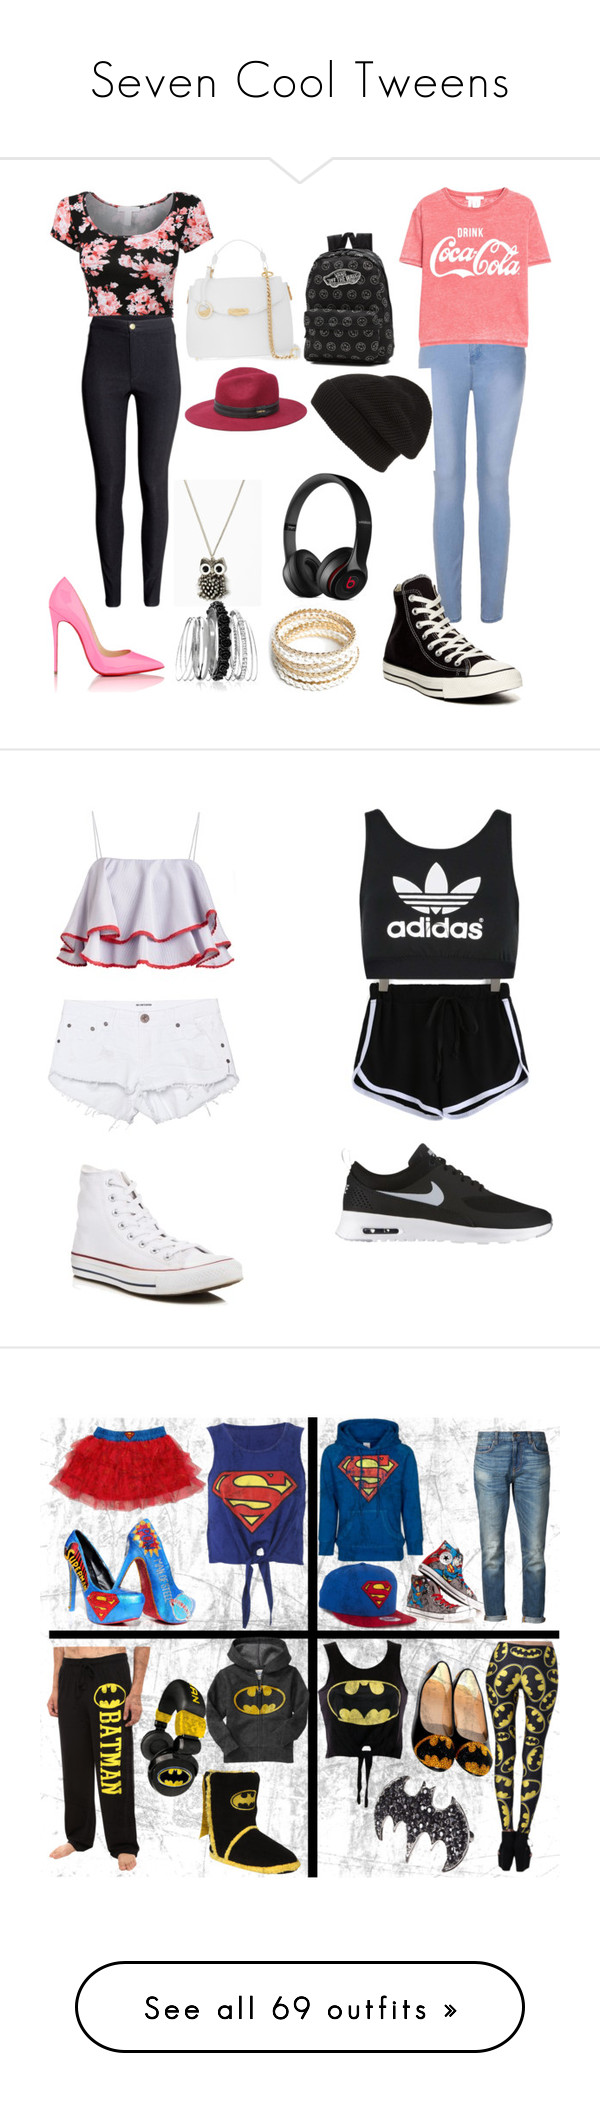 """""""Seven Cool Tweens"""" by sierra-ivy on Polyvore featuring Logoshirt, Converse, 6397, Old Navy, Valentino, Christian Louboutin, ASOS, Bling Jewelry, Bebe and Casetify"""